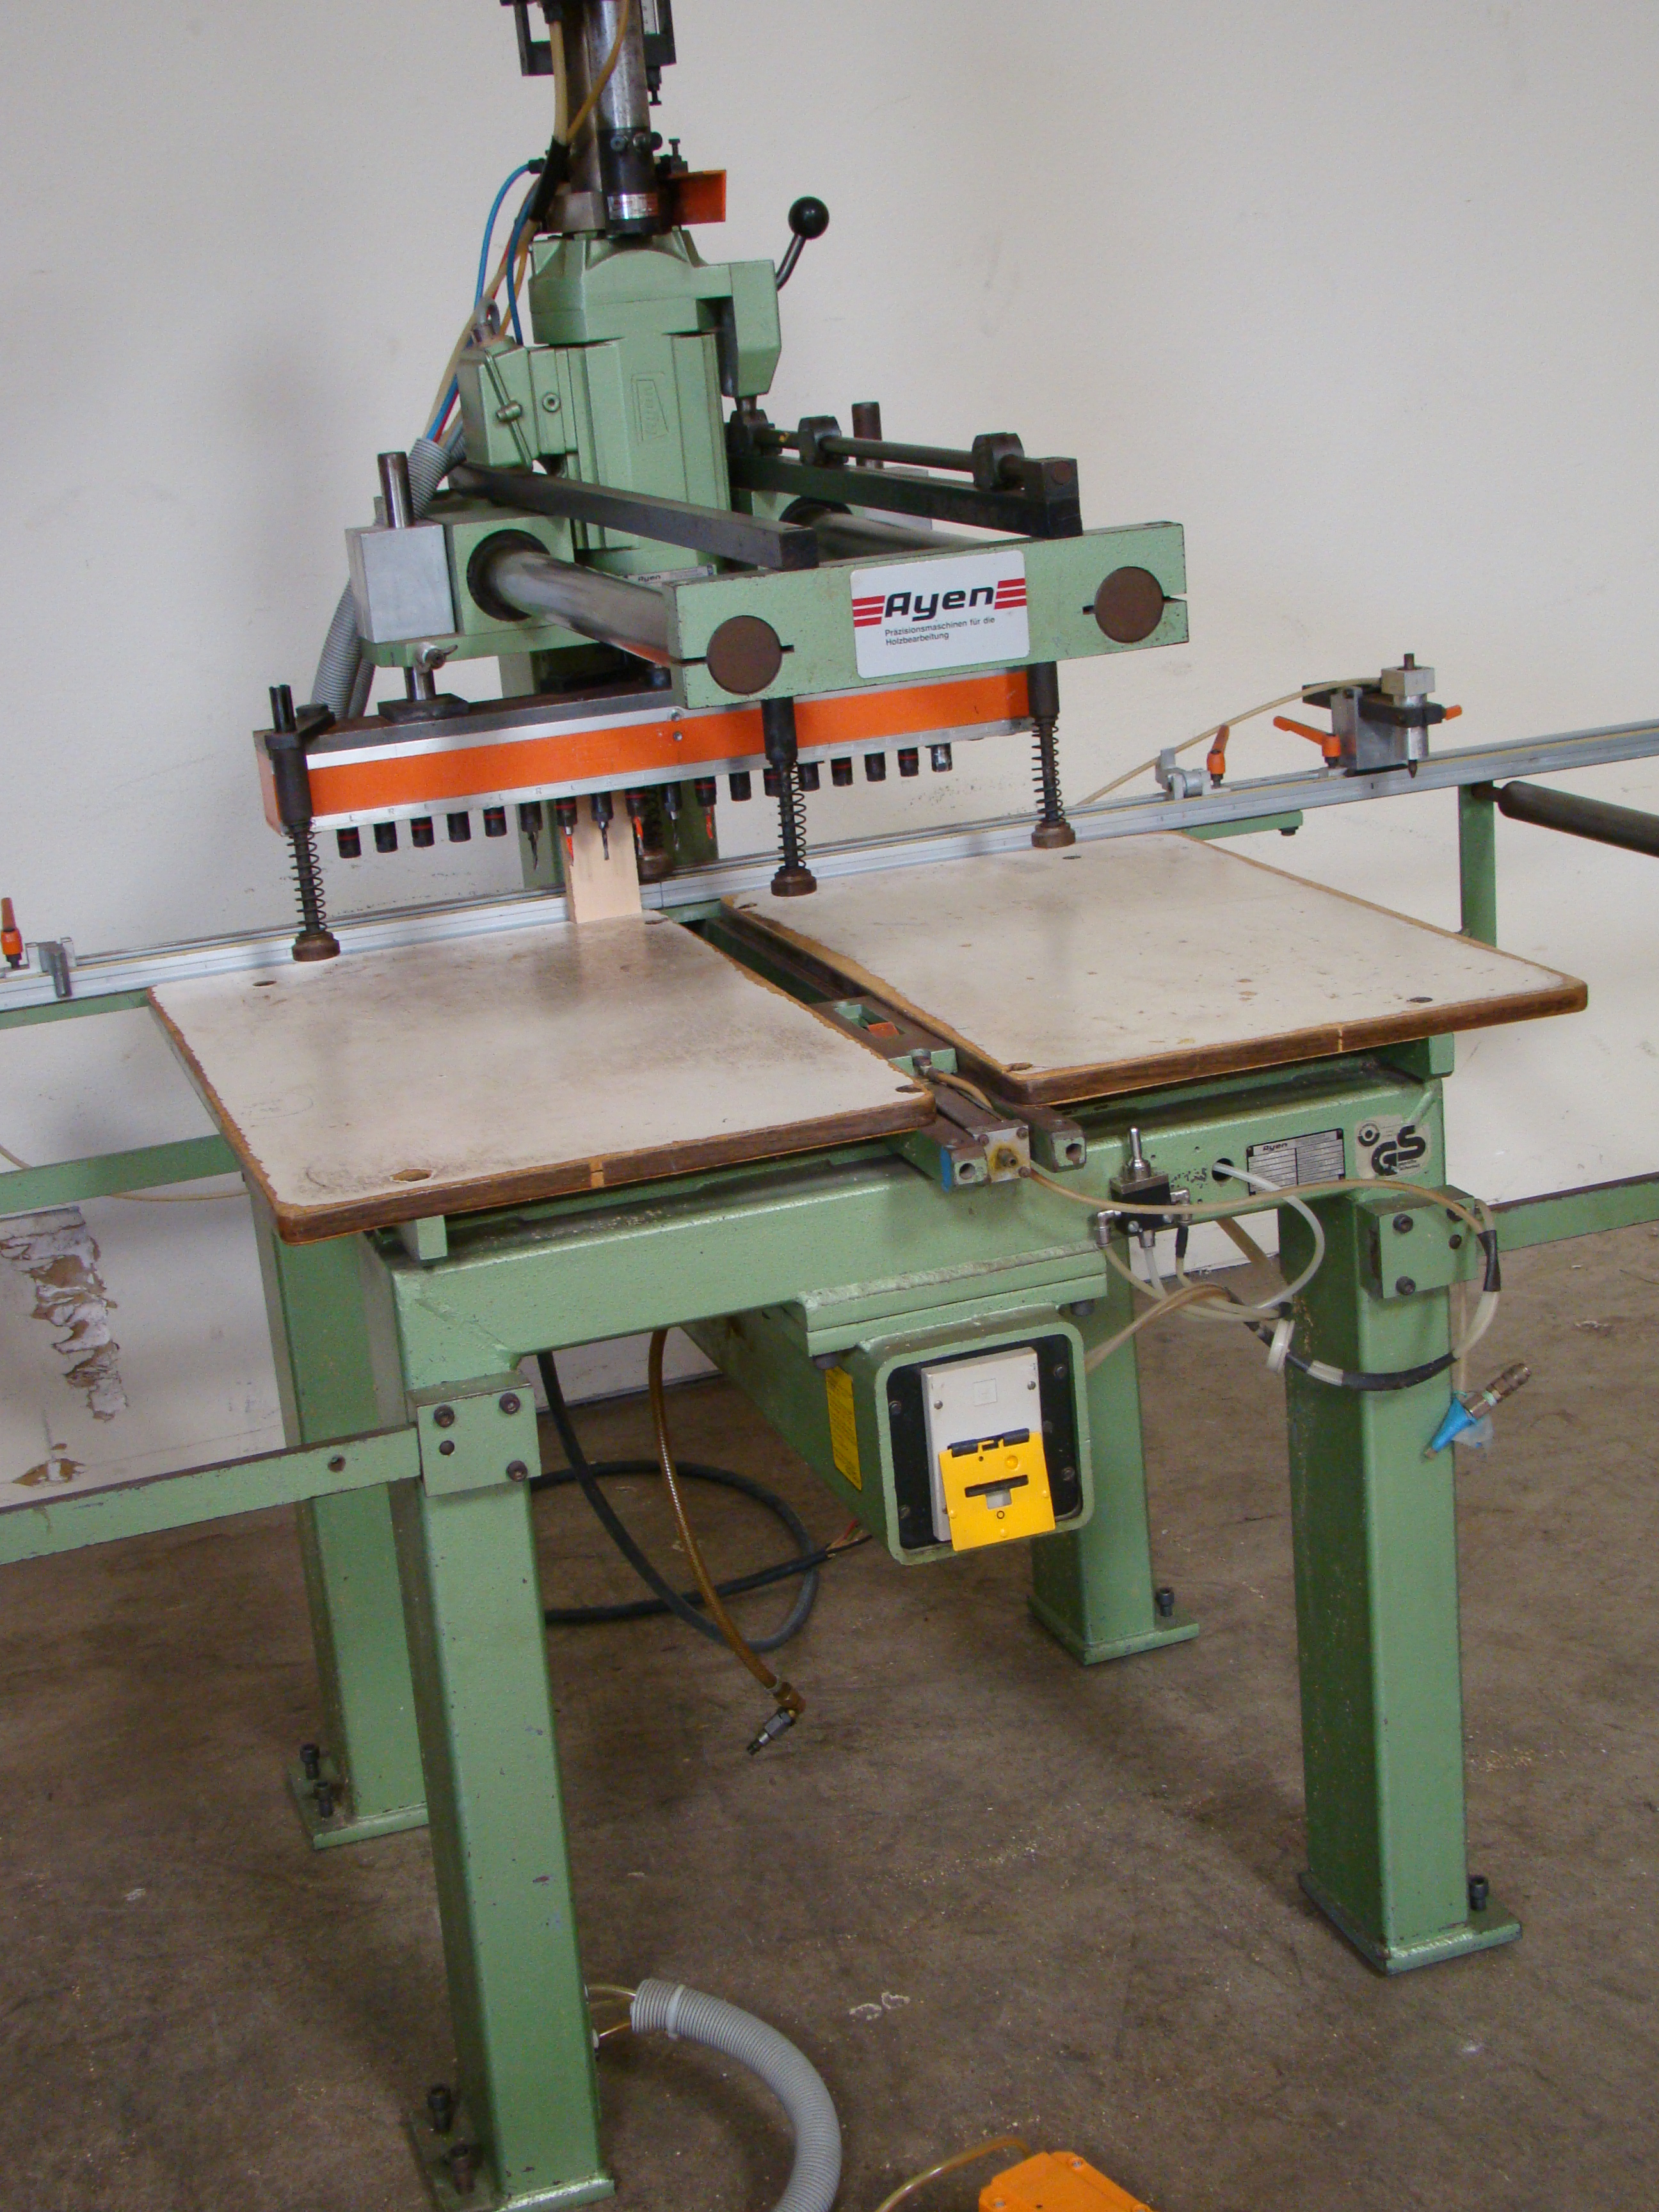 Ayen 21 Spindle Pneumatic Line Boring Machine with foot pedal, 230/460 Volt 3PH - Image 2 of 9